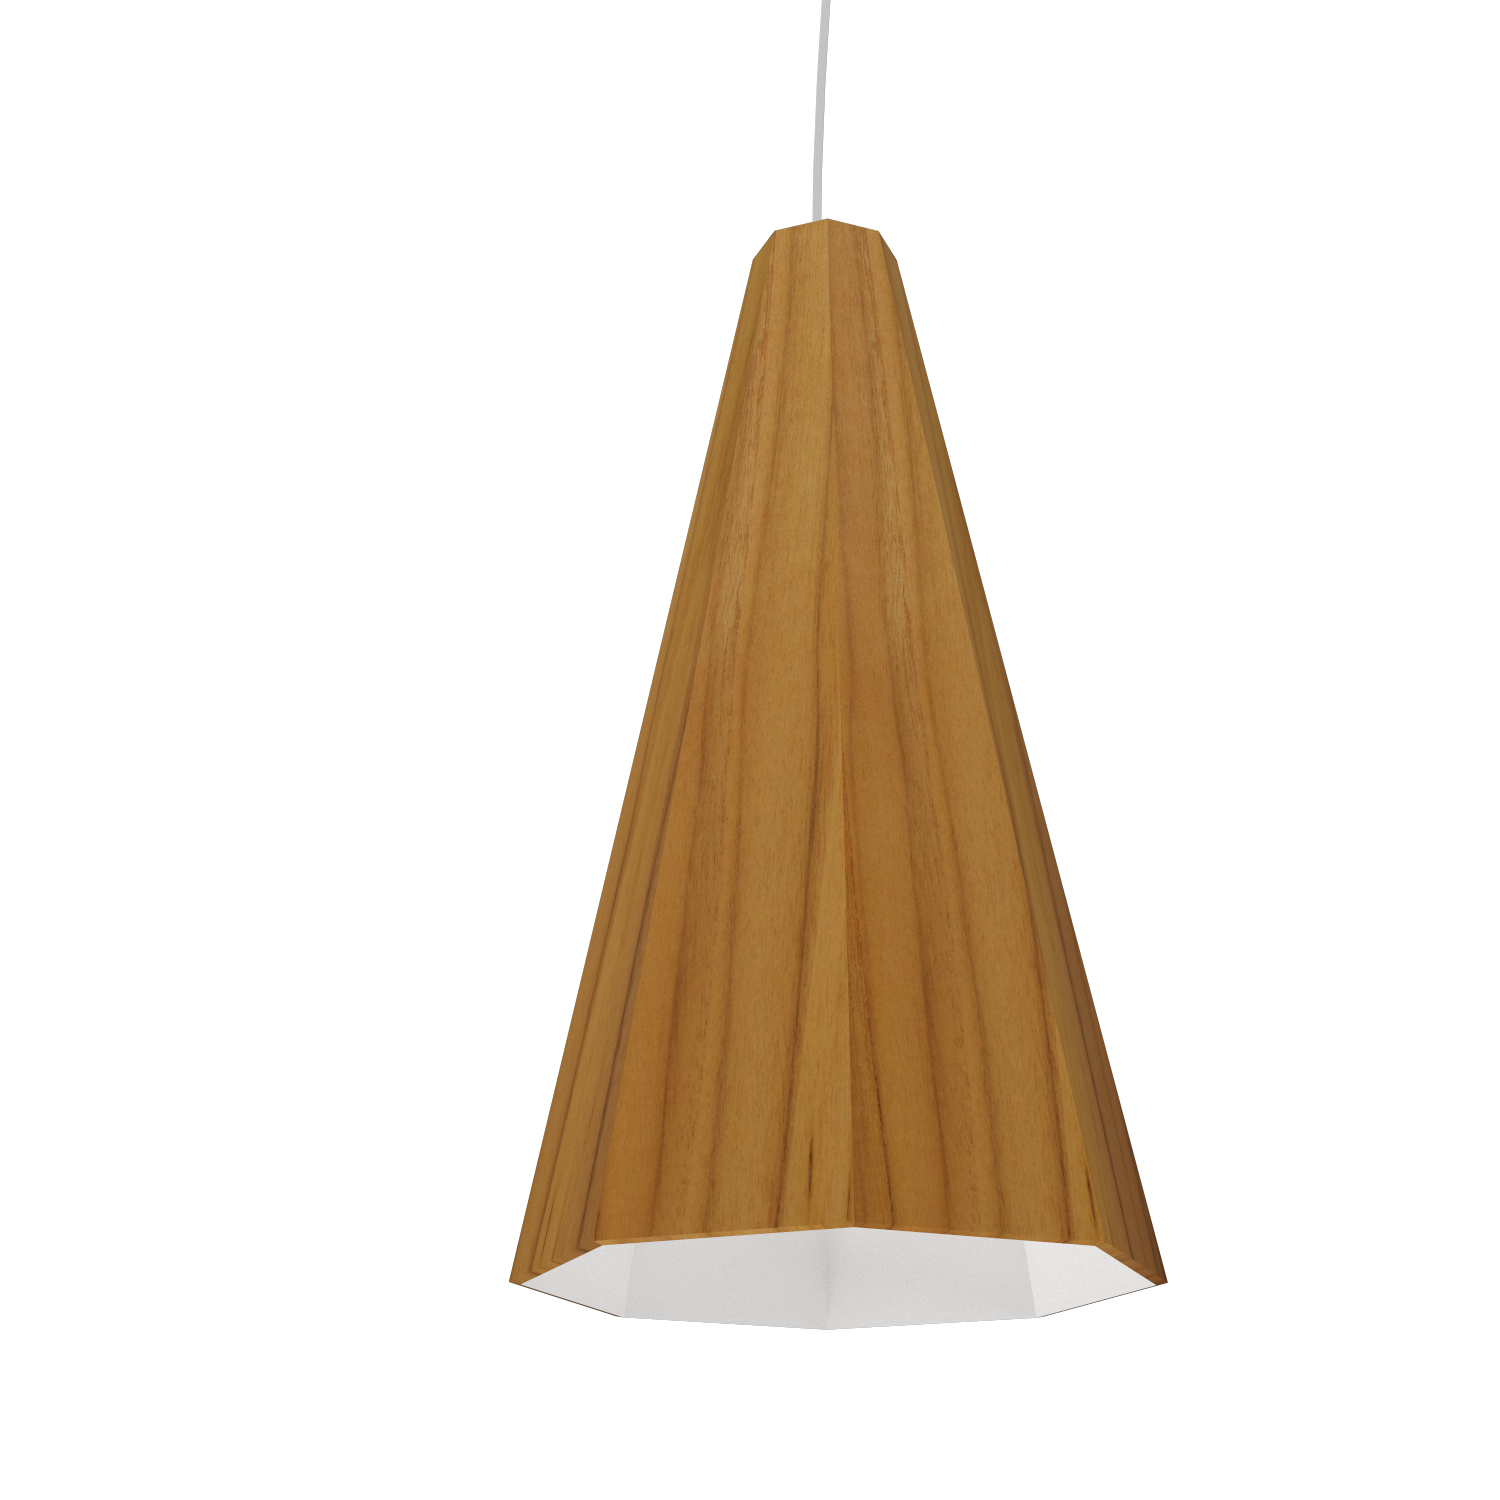 Pendant Lamp Accord Facetado 1231 - Facetada Line Accord Lighting | 12. Teak